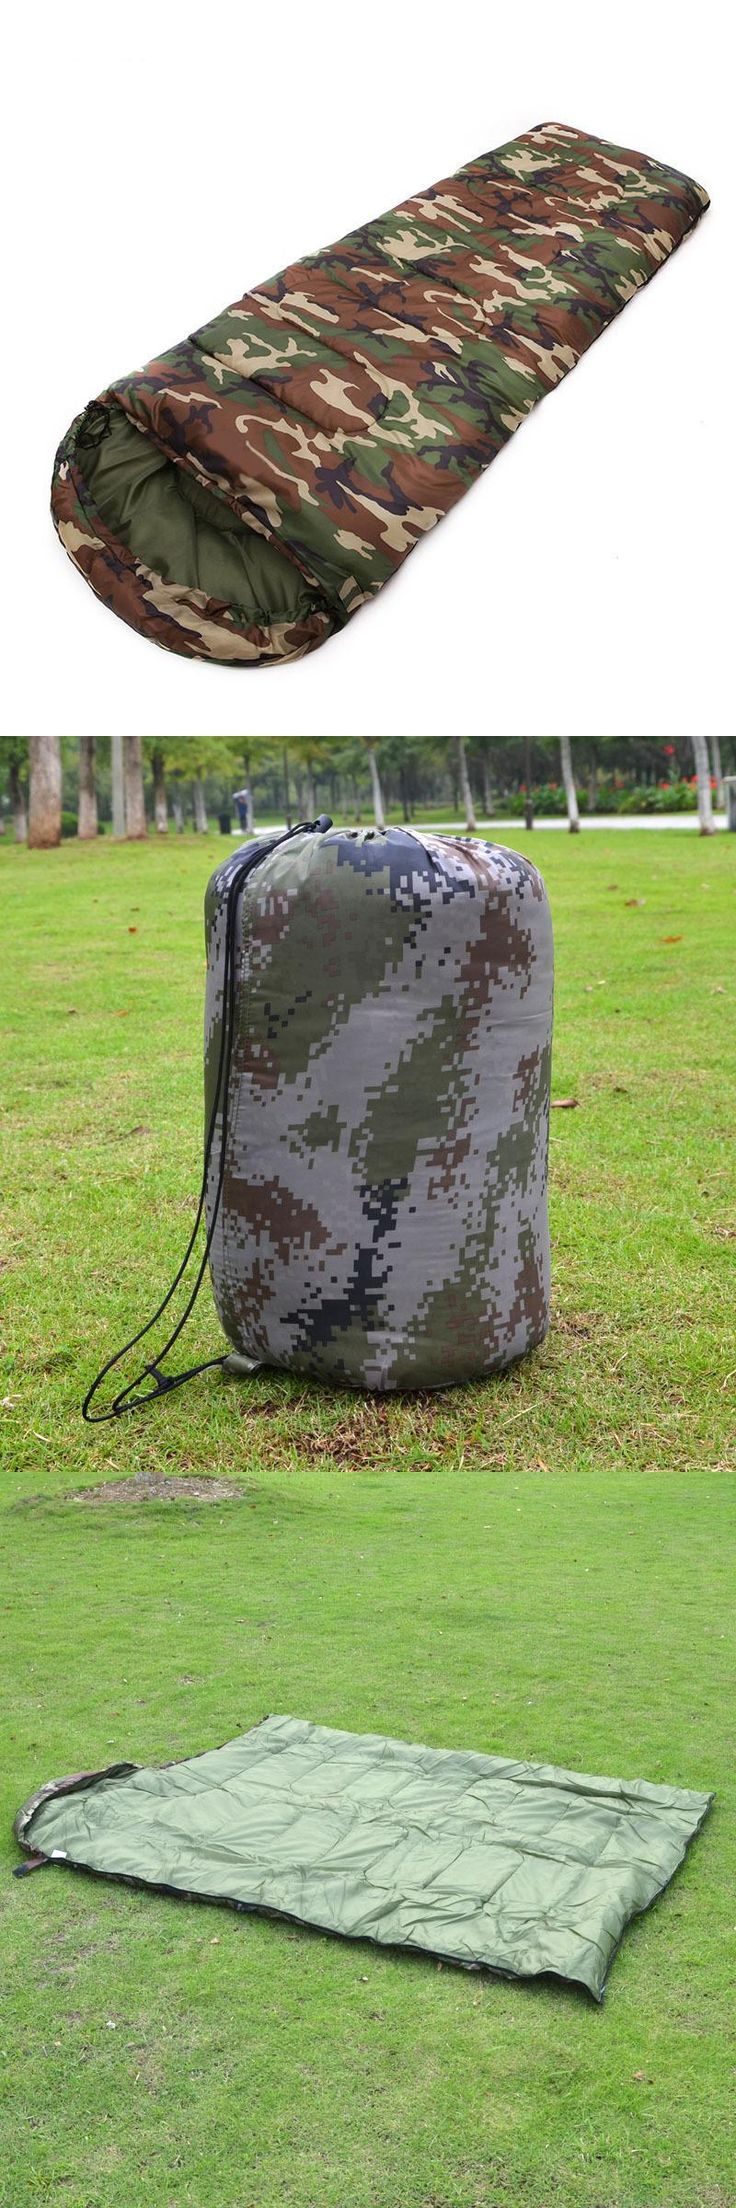 [Visit to Buy] Camouflage Camping sleeping bag 3 season Cotton filling envelope style army hooded Military sleeping bags fishing #Advertisement